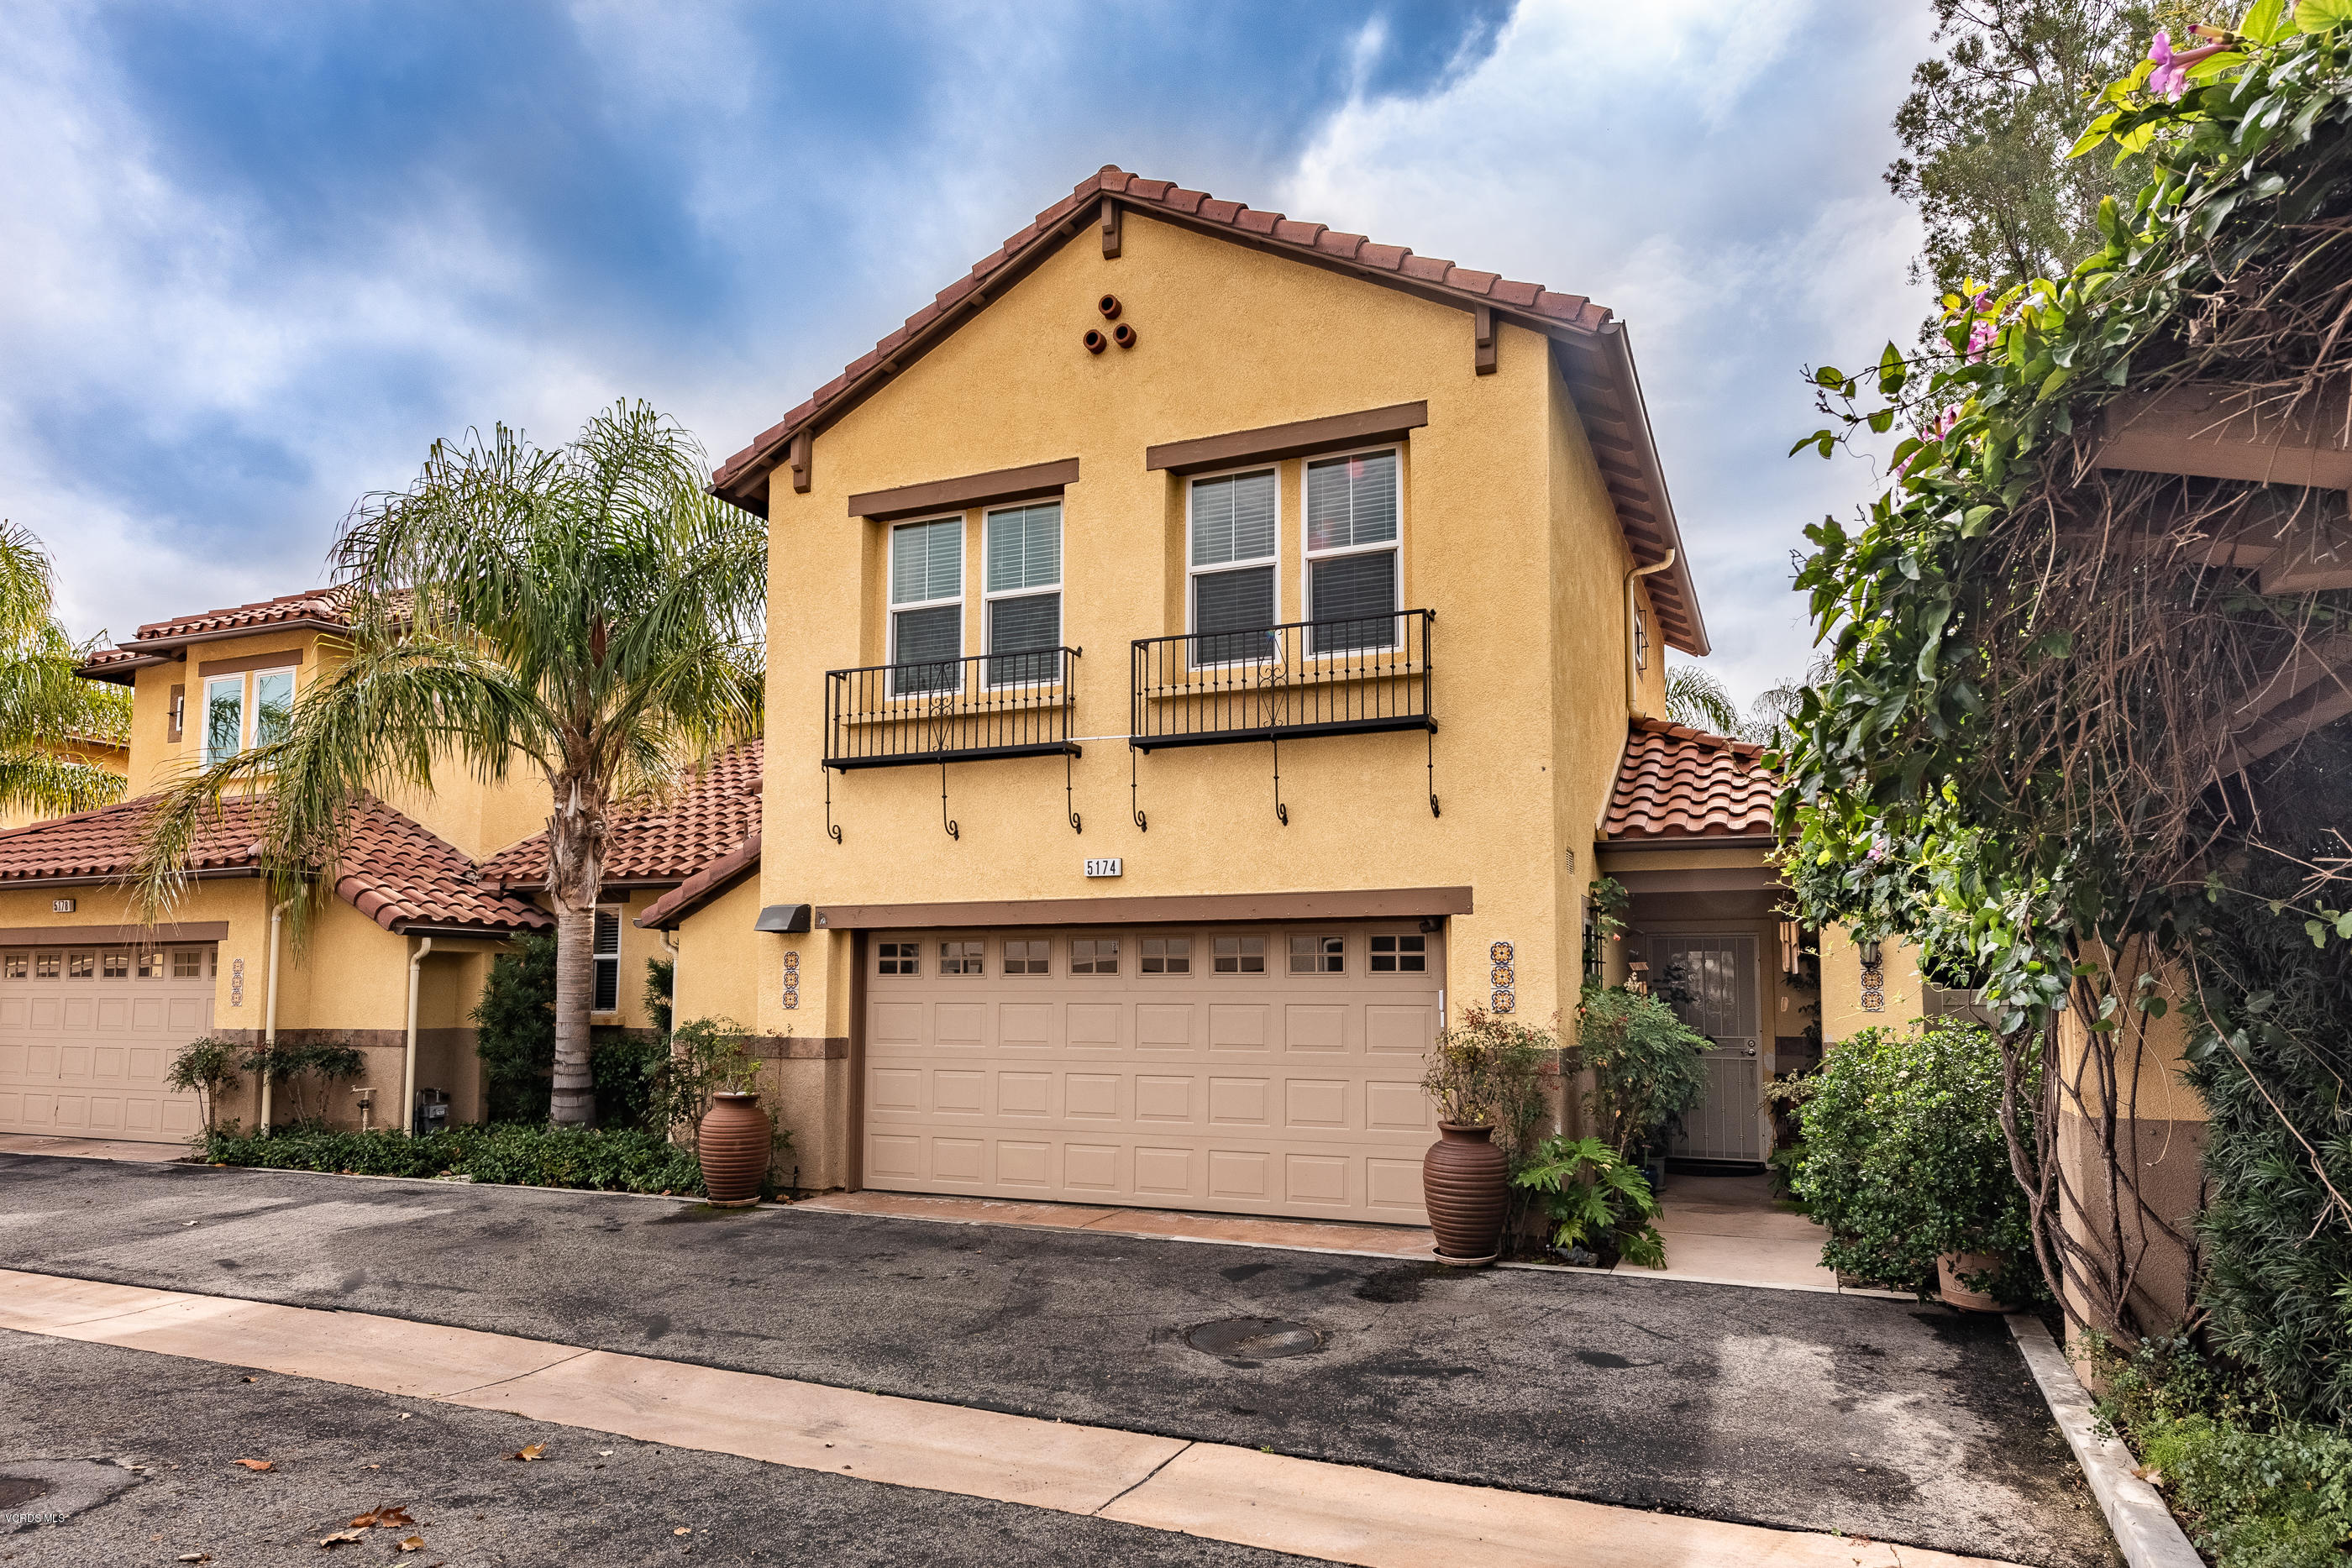 5174 Pine Rose Court, Simi Valley, CA 93063